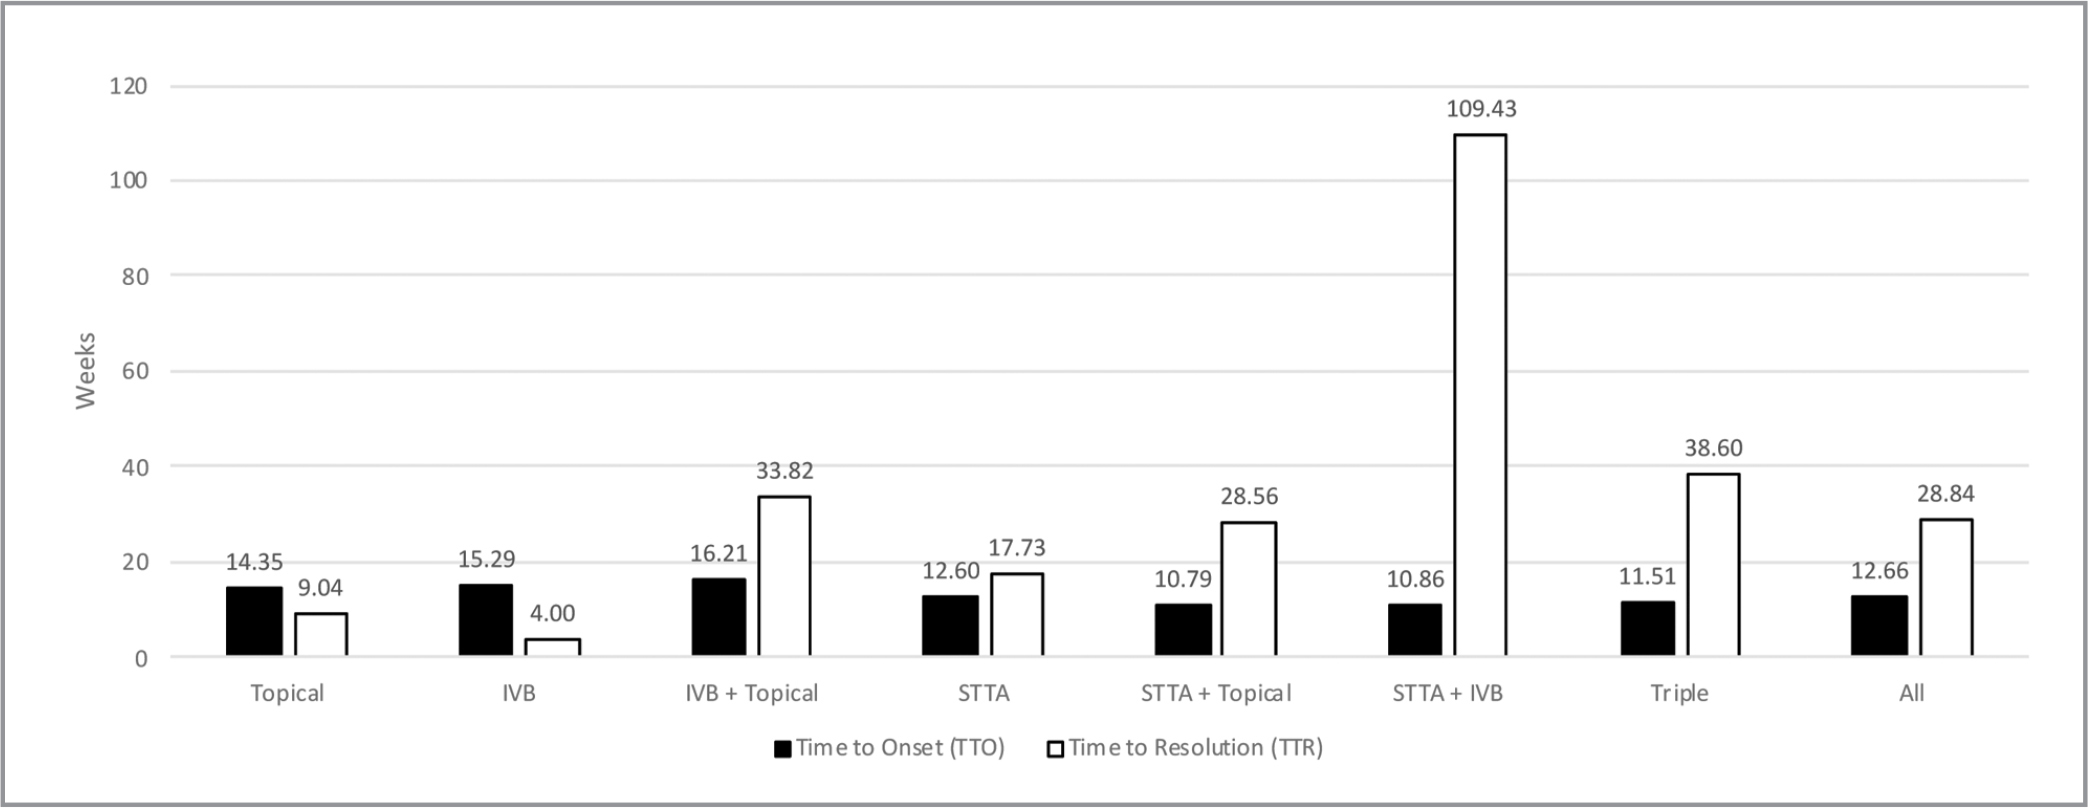 Time to onset (TTO) and time to clinical or complete resolution (TTR) by treatment group. Analysis of variance (ANOVA) testing demonstrated no significant difference between treatment groups regarding TTO (P = .99). ANOVA testing on TTR coupled with pairwise comparisons demonstrated the STTA/IVB subgroup had a significantly longer mean TTR (109.43 weeks; standard deviation: 82.63; confidence interval: −95.84 to 314.69; P < .01). IVB = intravitreal bevacizumab; STTA = sub-Tenon's triamcinolone acetonide; IVB = intravitreal bevacizumab